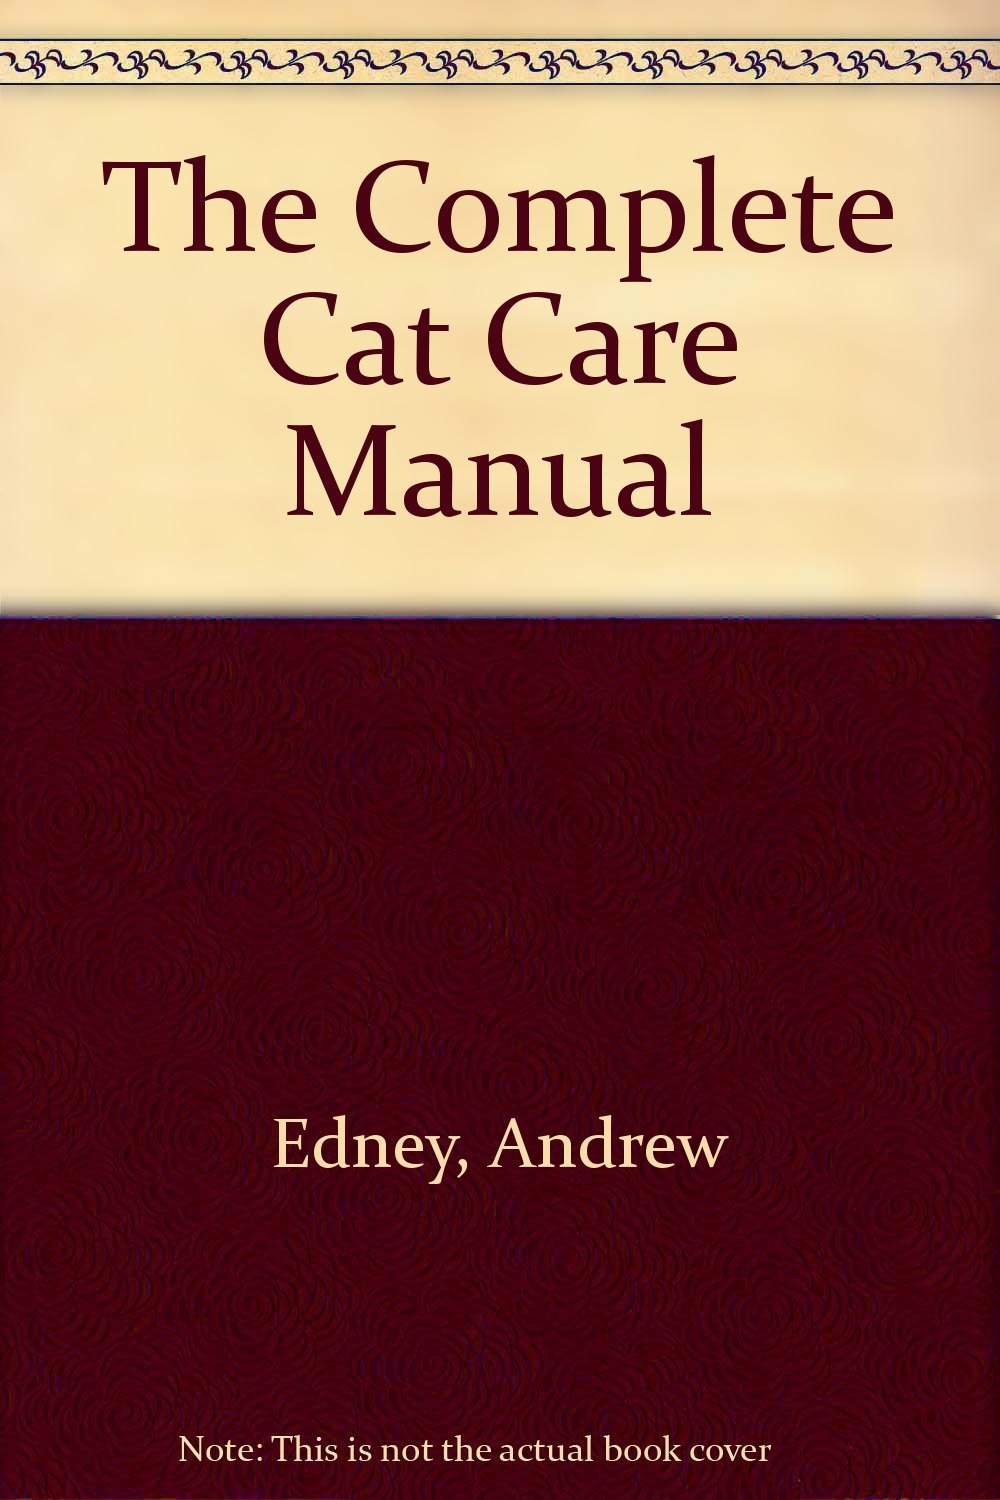 The Complete Cat Care Manual